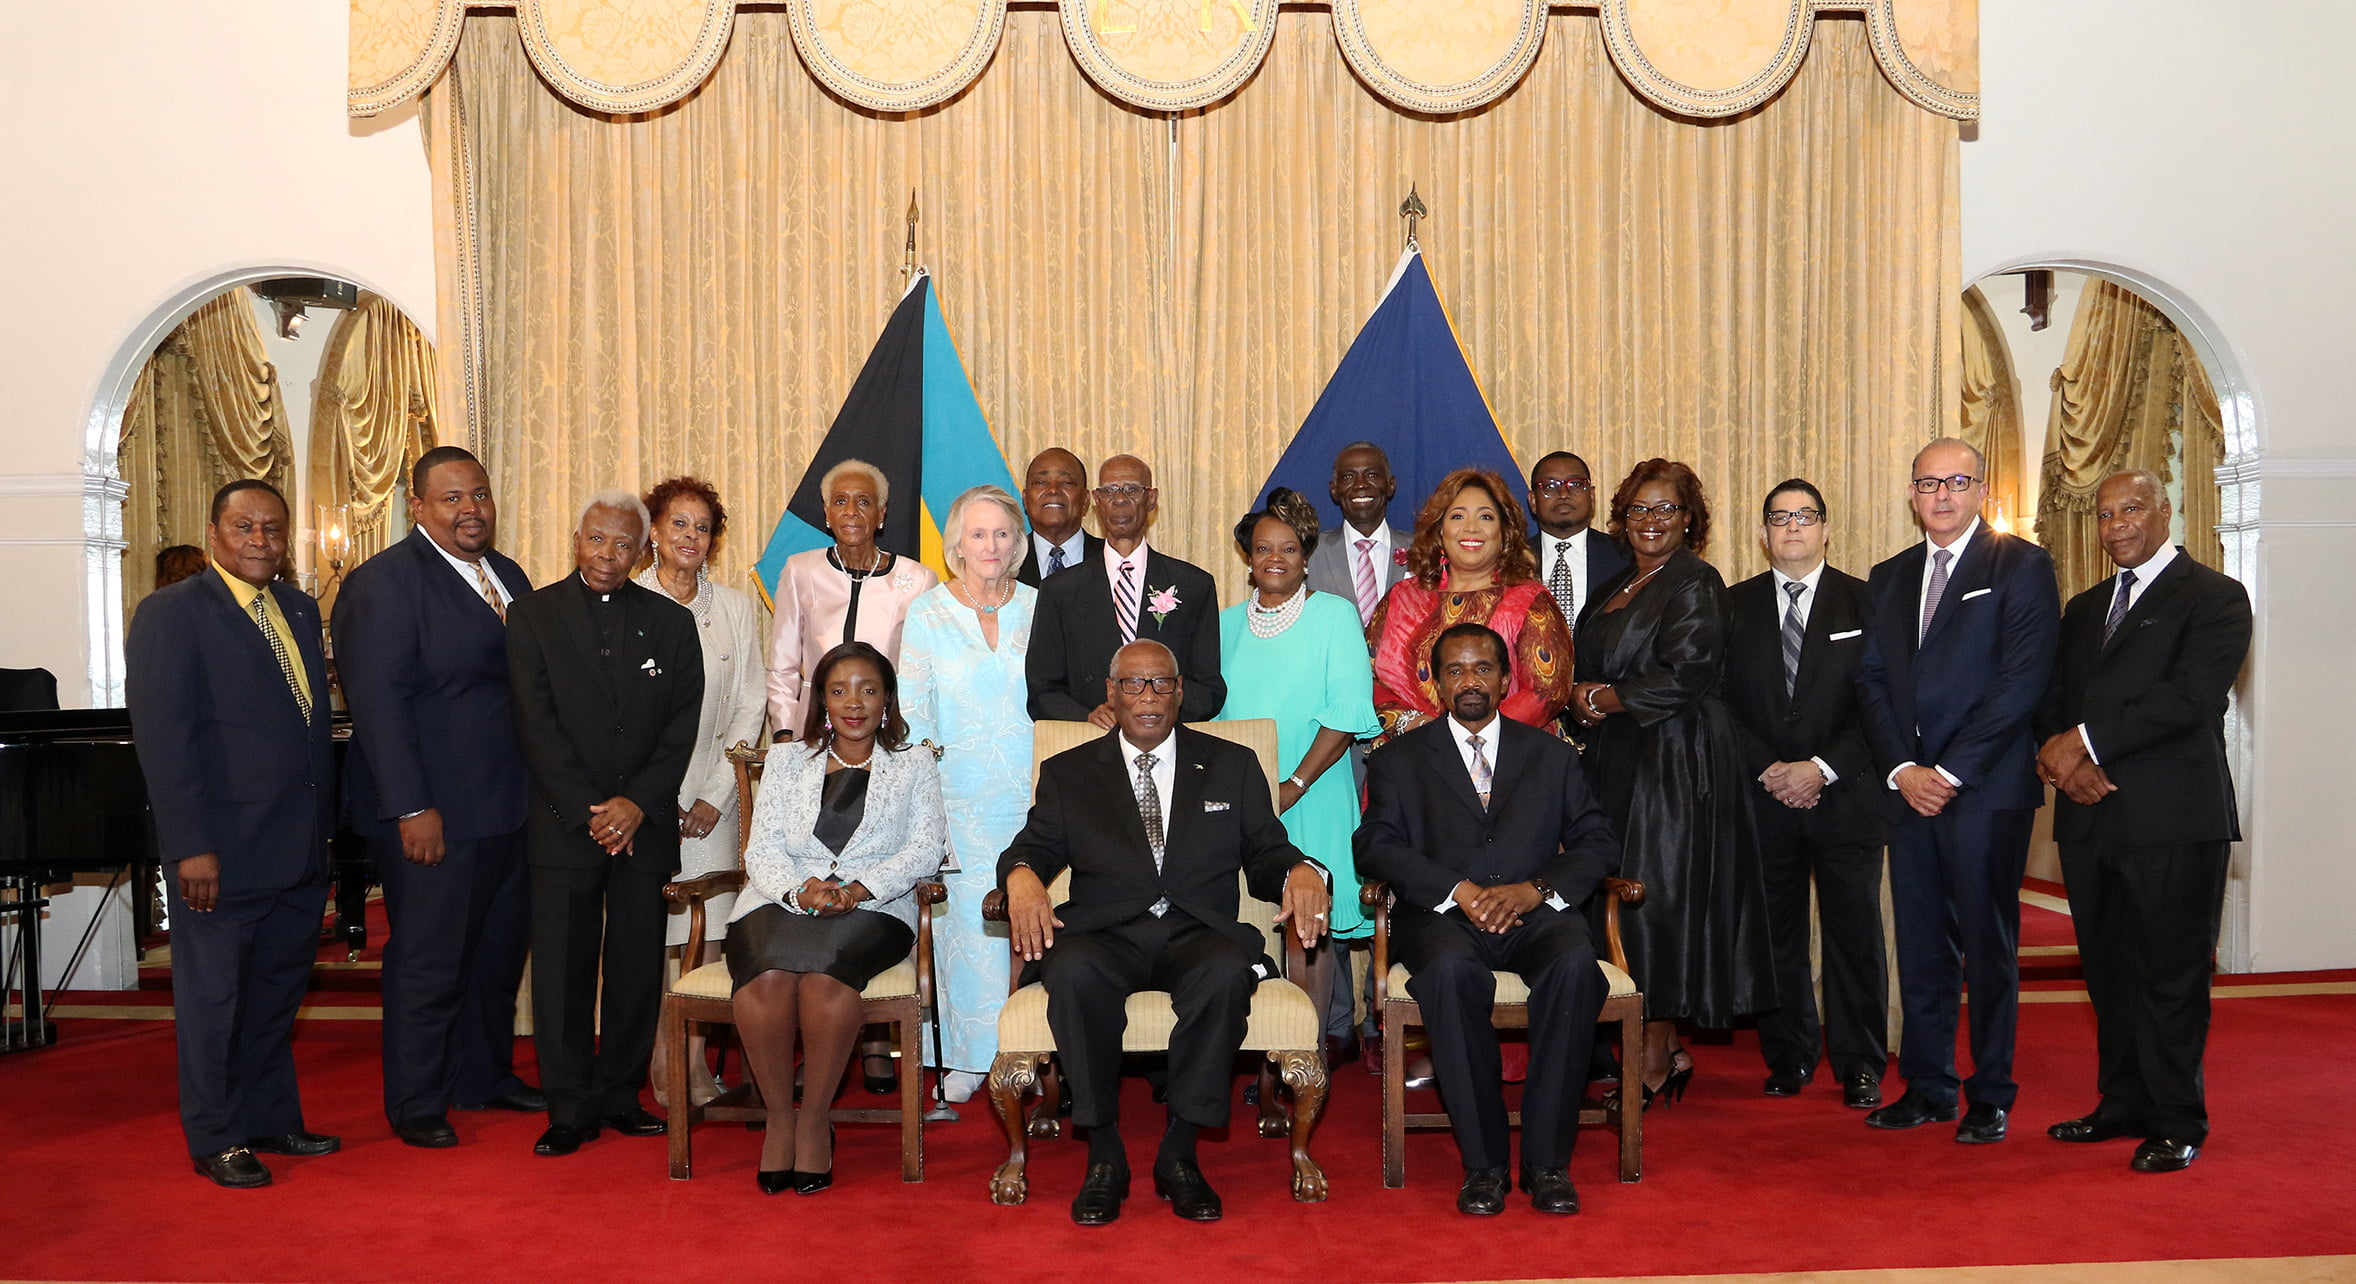 24th R.E. Cooper Meritorious Service Award presented to honorees at Government House